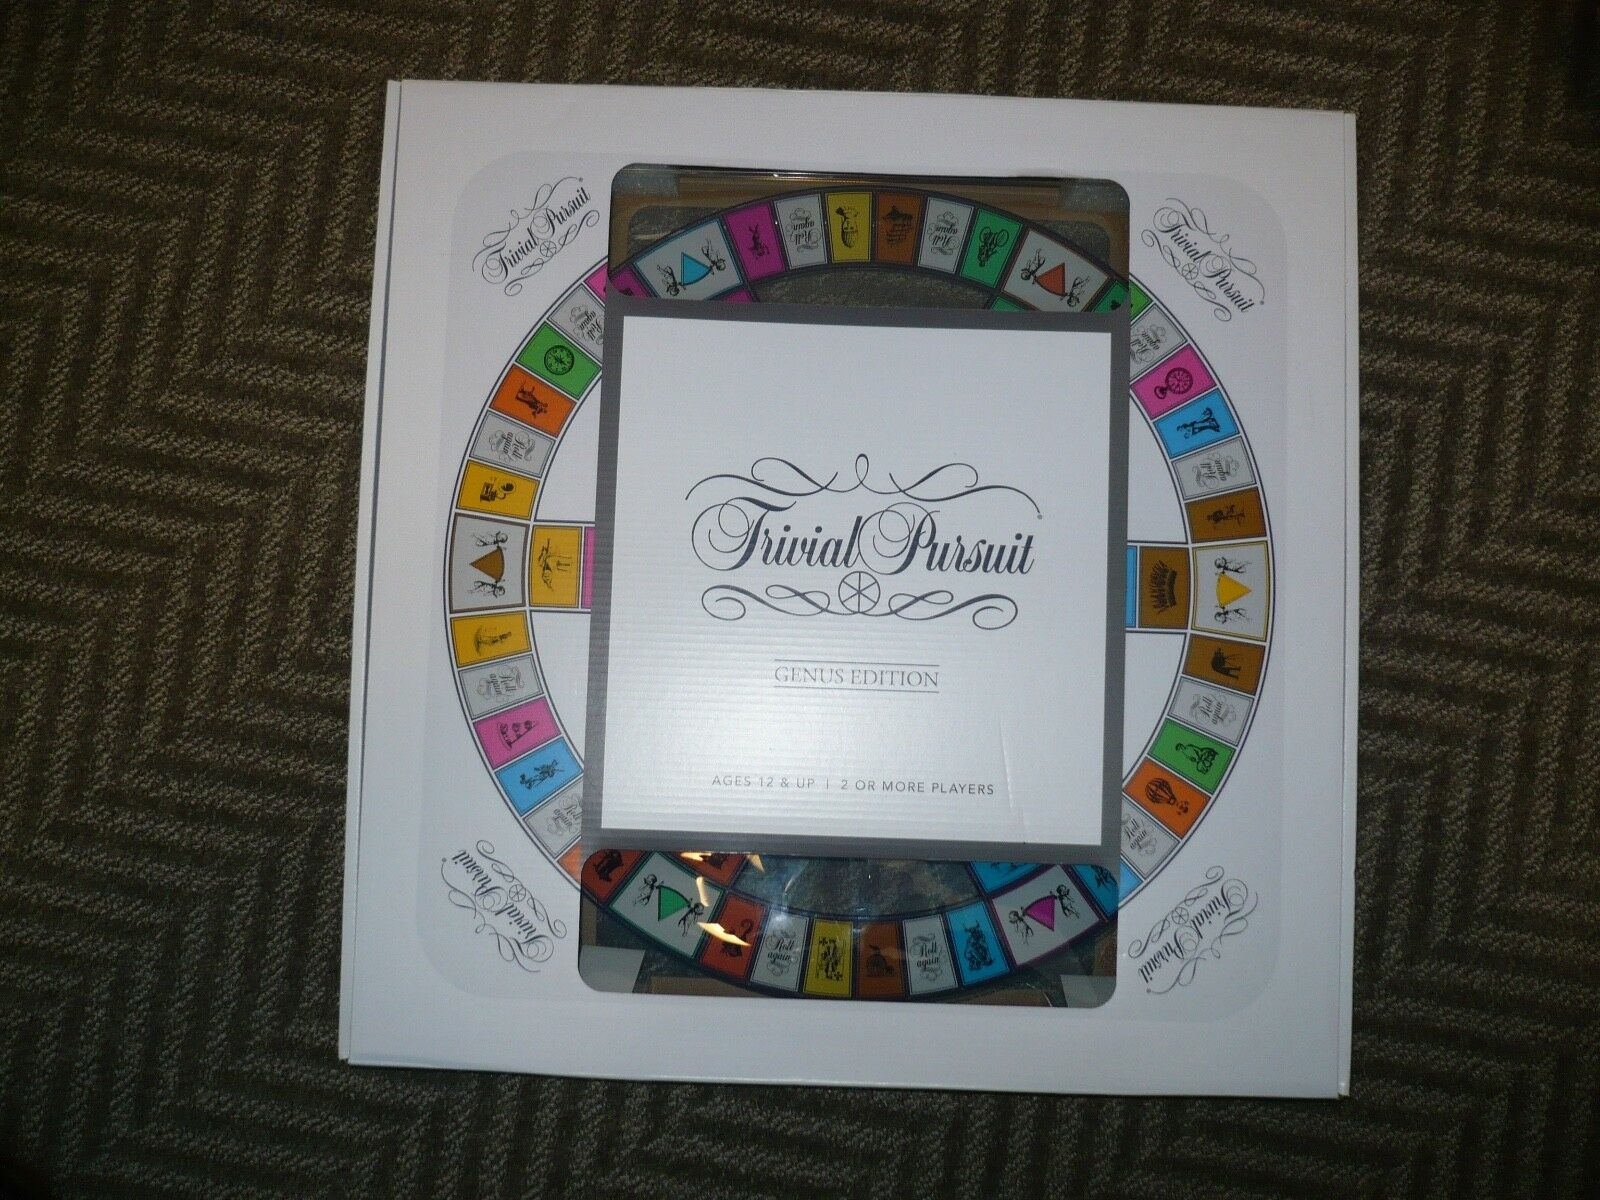 Trivial Pursuit Deluxe TempeROT Glass Genus Edition Brand New Unopened